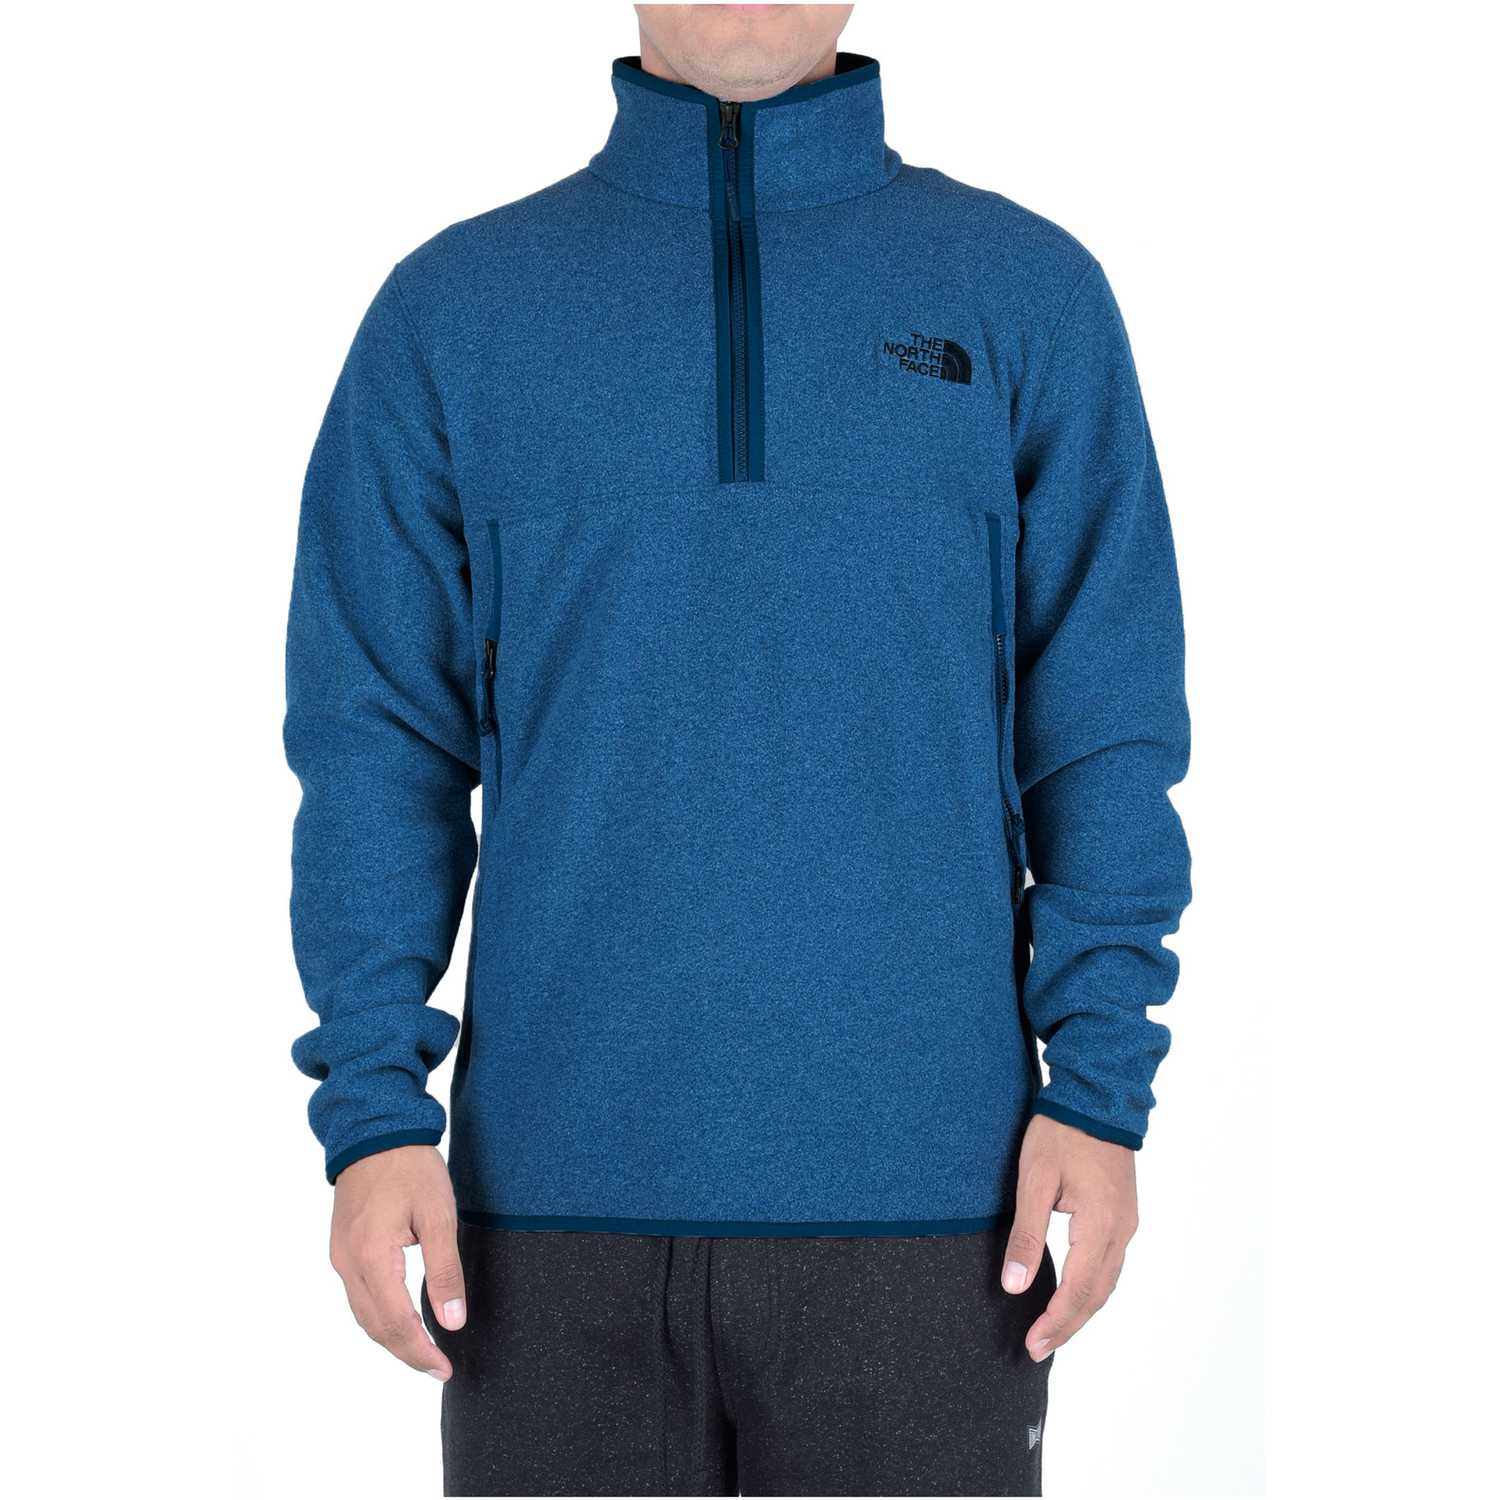 Casaca de Hombre The North Face Azul m glacier alpine 1/4 zip